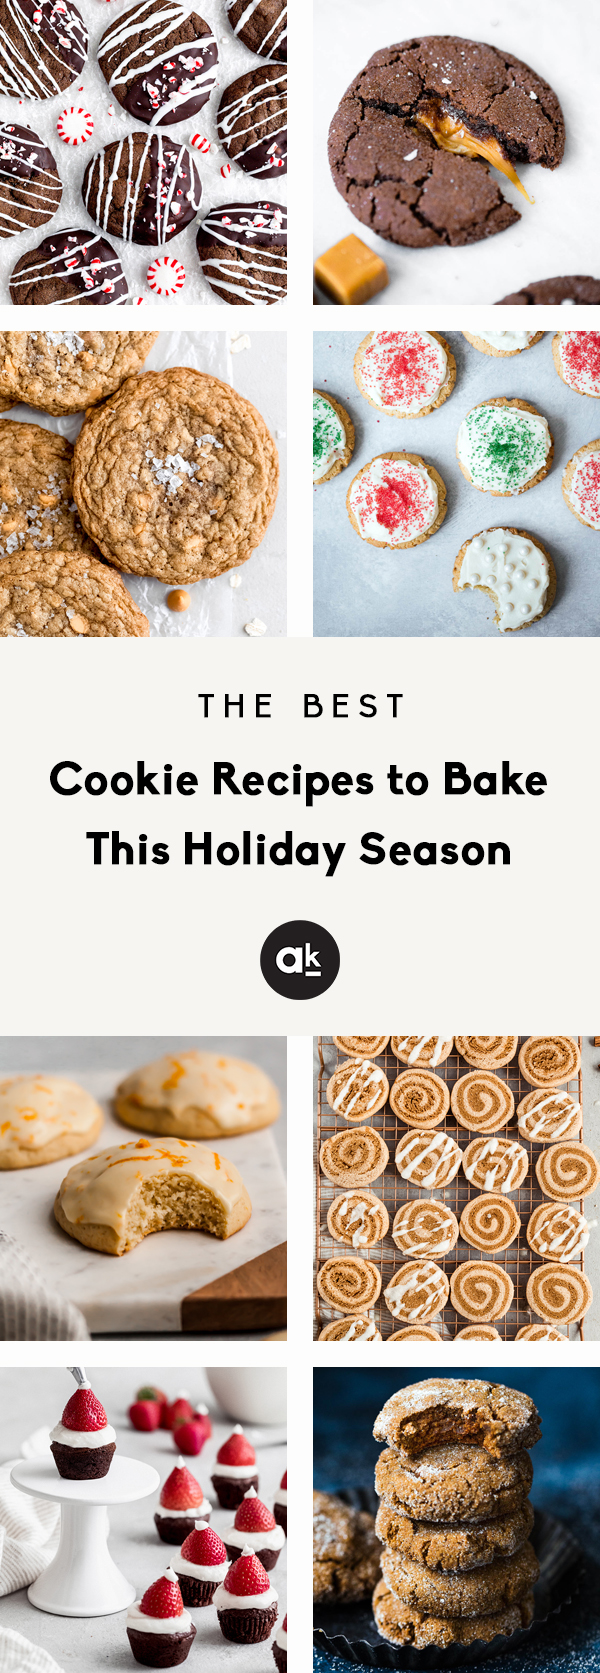 The best cookie recipes to bake this holiday season (and all year round!) From festive Christmas cookies to delicious chocolate chip cookies that everyone will love - these will be your new go-to cookie recipes.